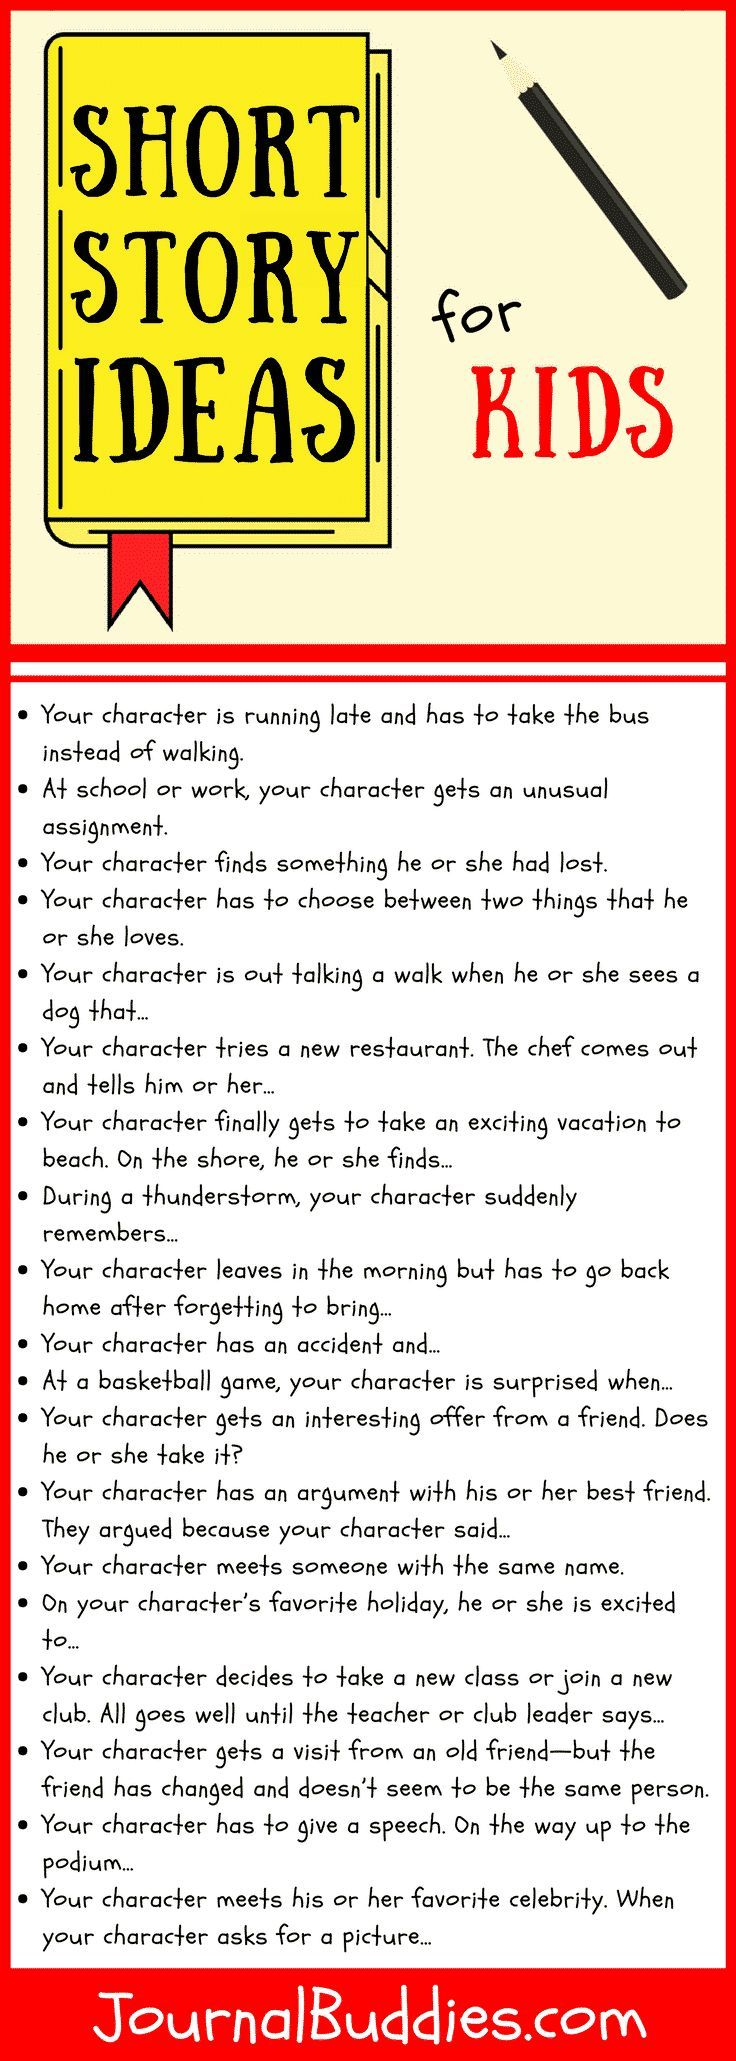 Short Story Ideas for Kids  Writing prompts for kids, Writing